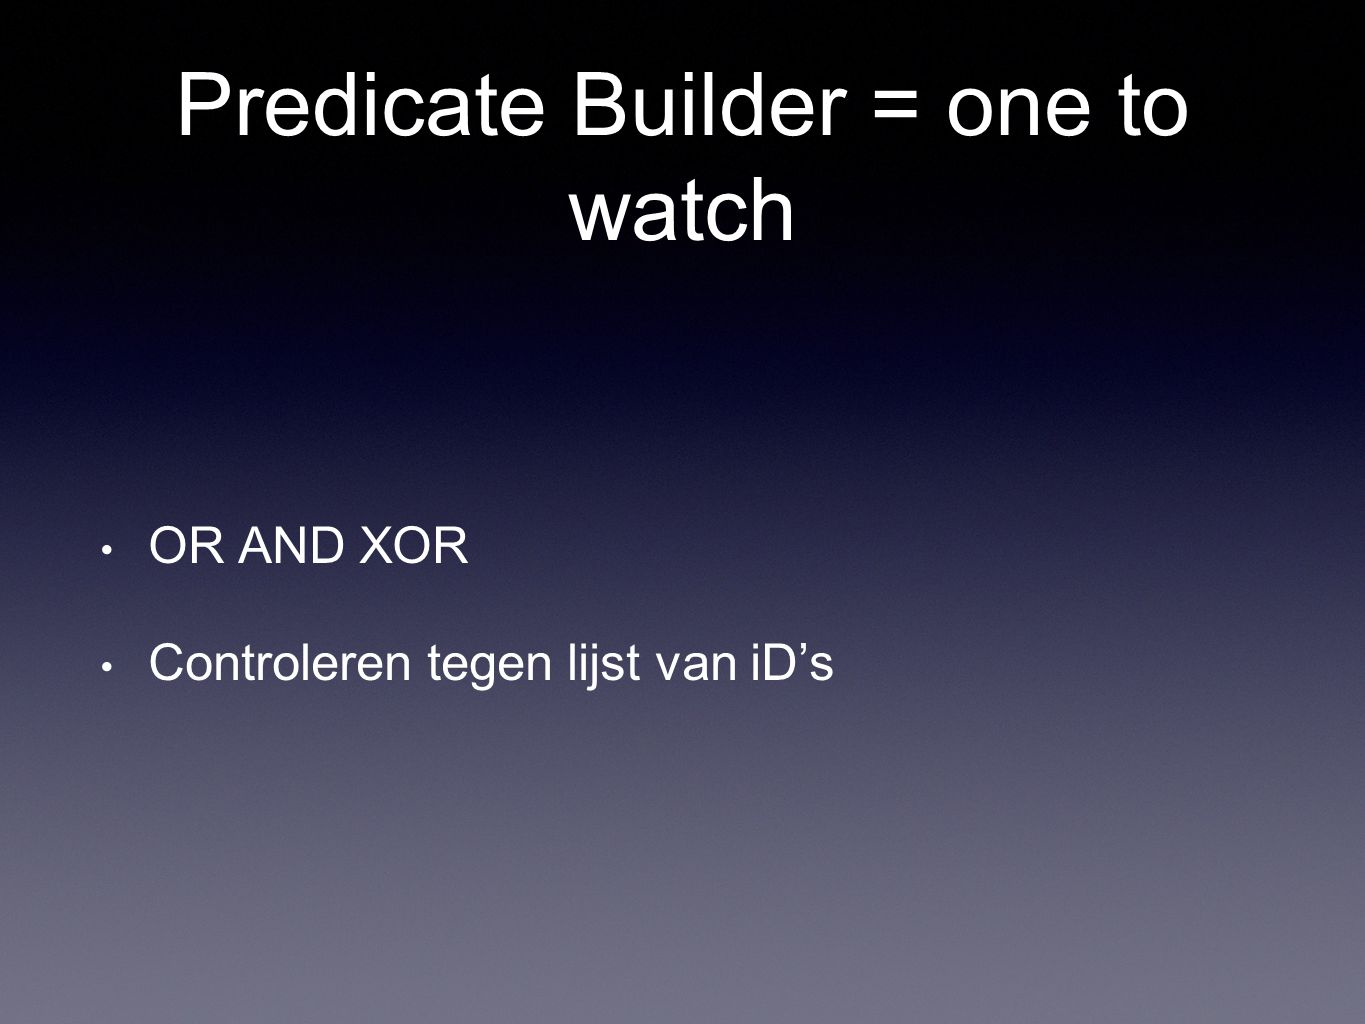 Predicate Builder = one to watch